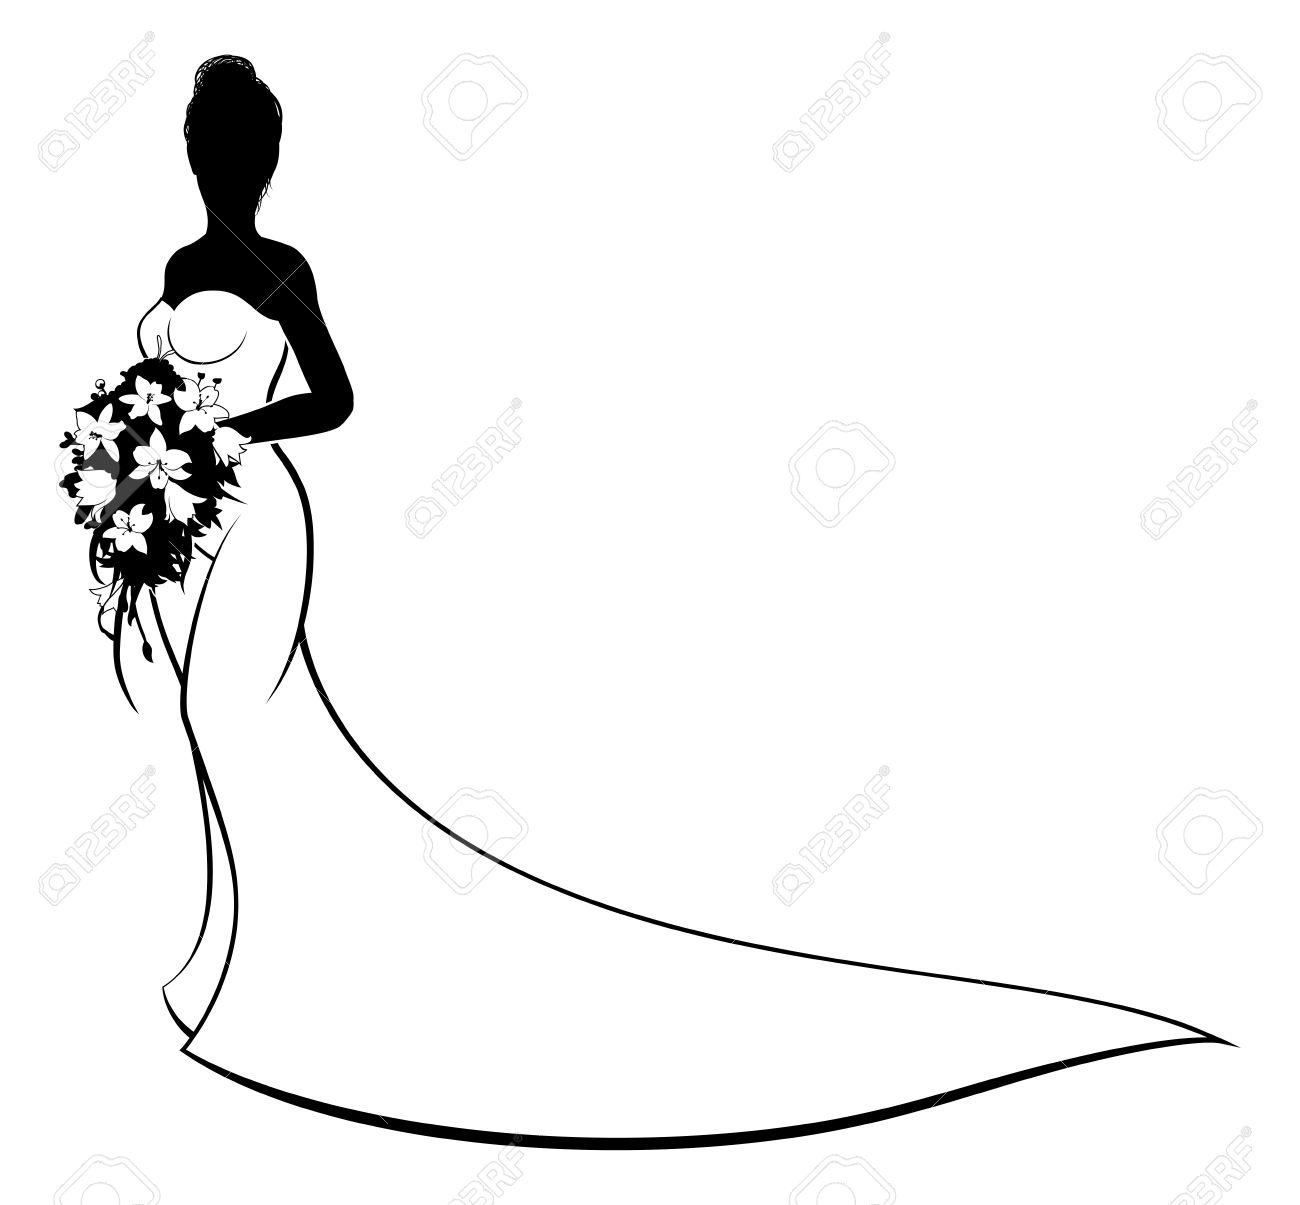 1300x1205 Bride Silhouette With White Bridal Dress Gown Holding A Floral